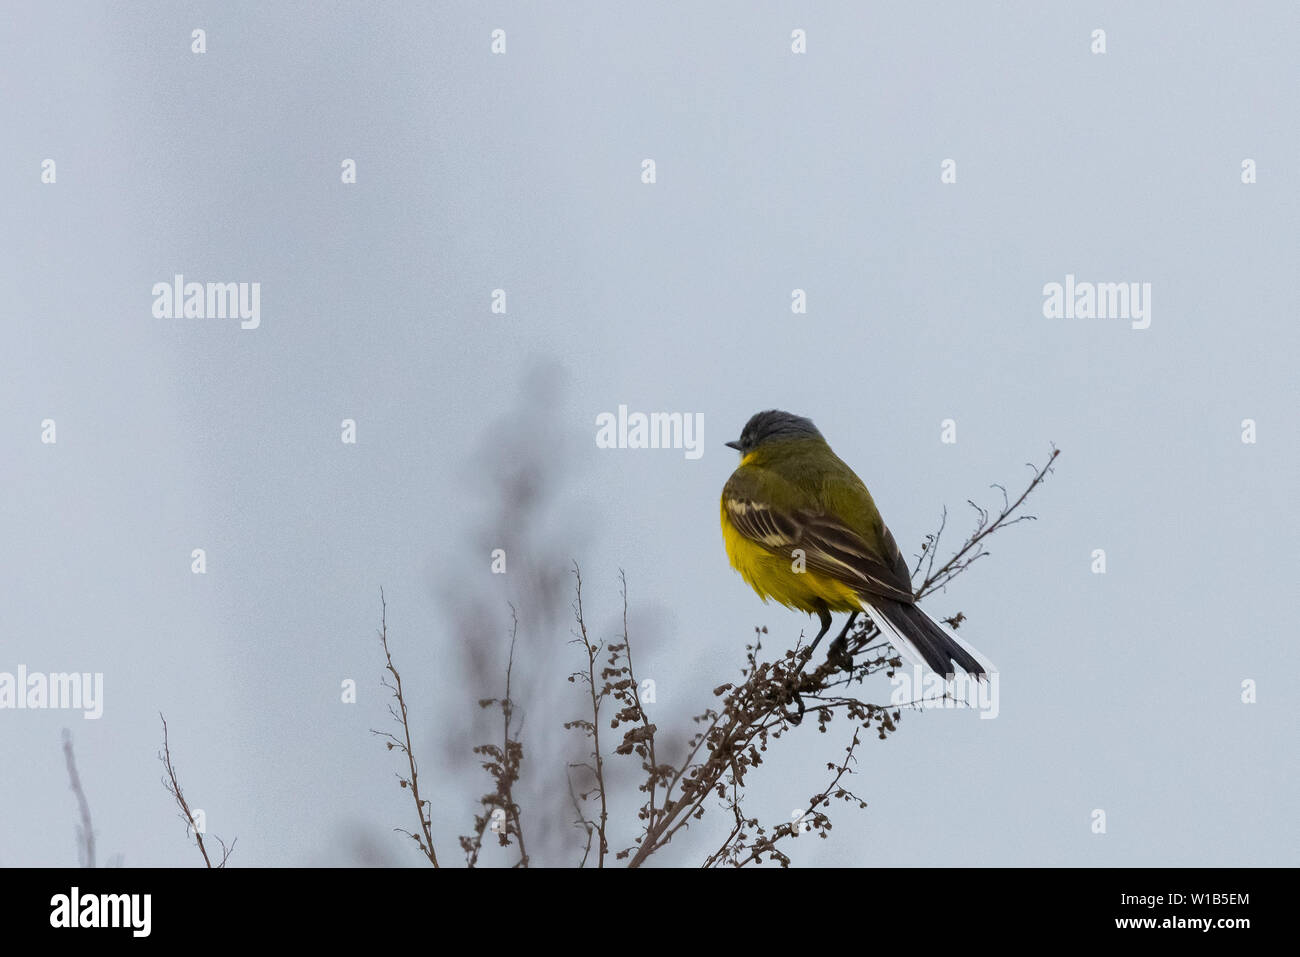 Black headed wagtail sits on a twig on a blurred background. Close up photo - Stock Image